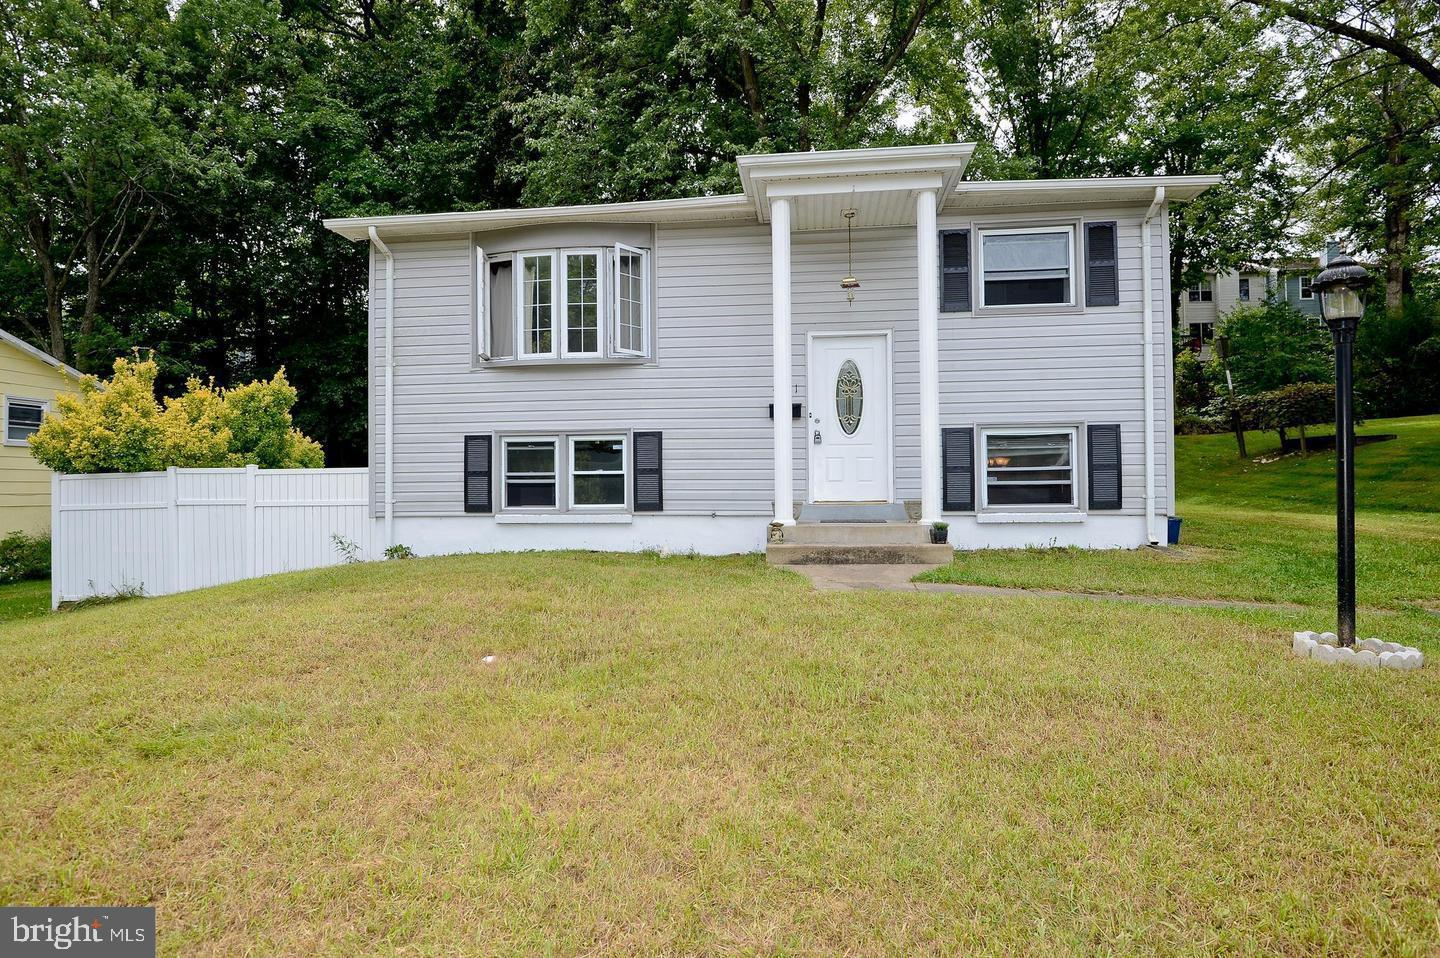 In a Charming neighborhood, Excellent Well Maintained Detached single family home, with many updates